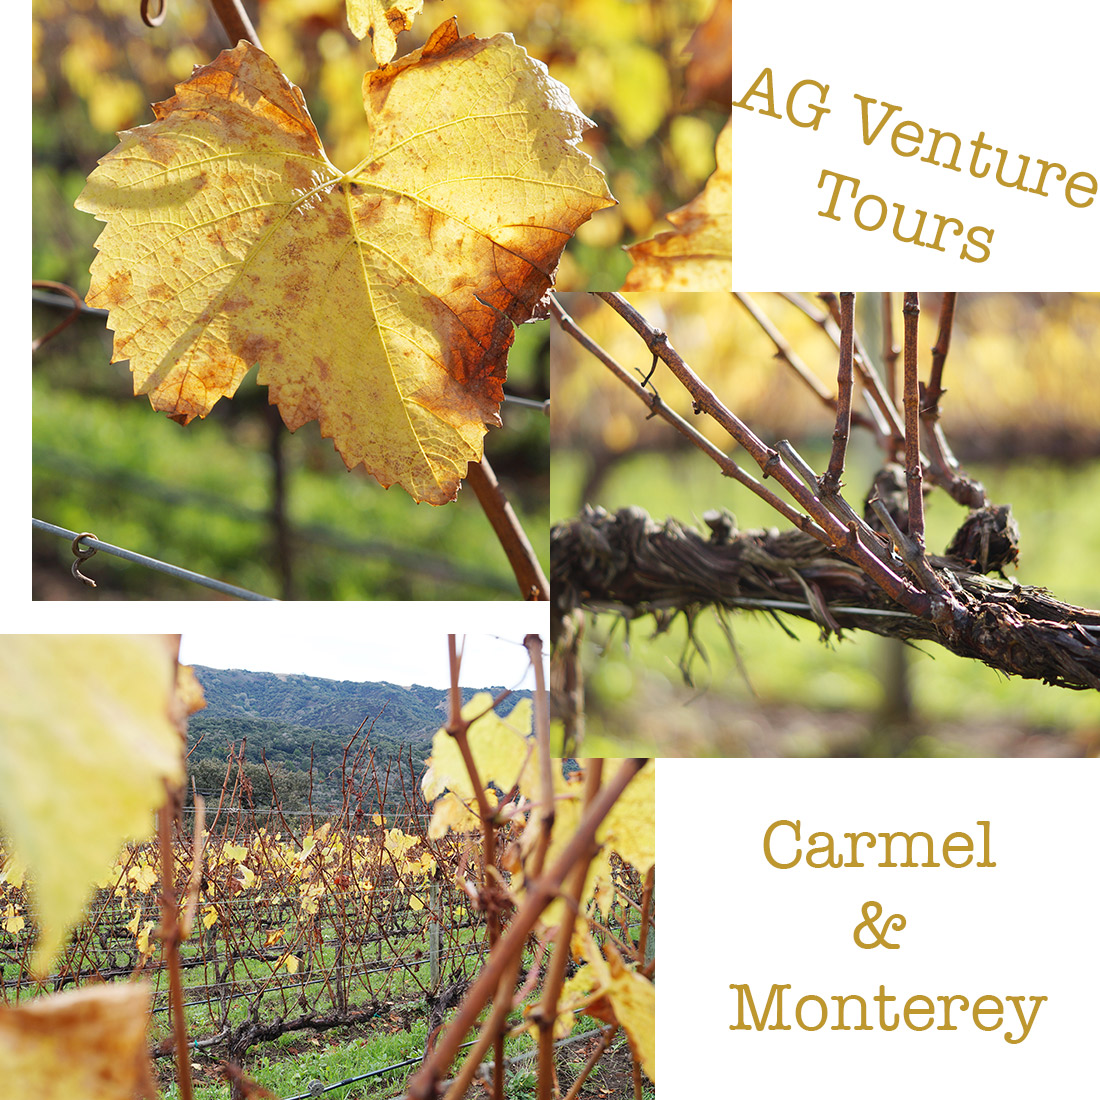 bag-at-you-ag-venture-tours-carmel-and-monterey